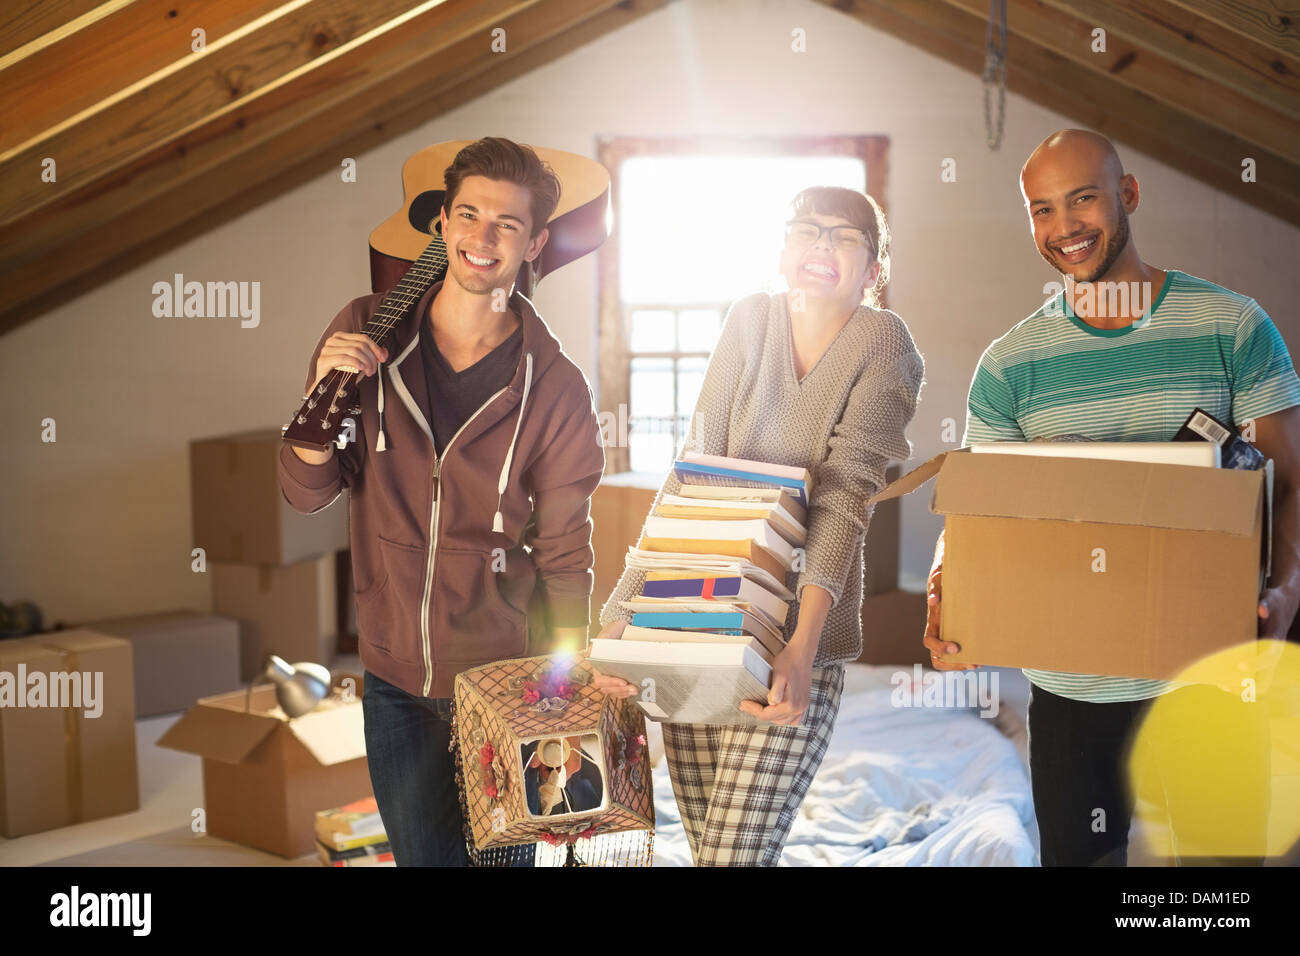 Friends unpacking boxes in attic - Stock Image